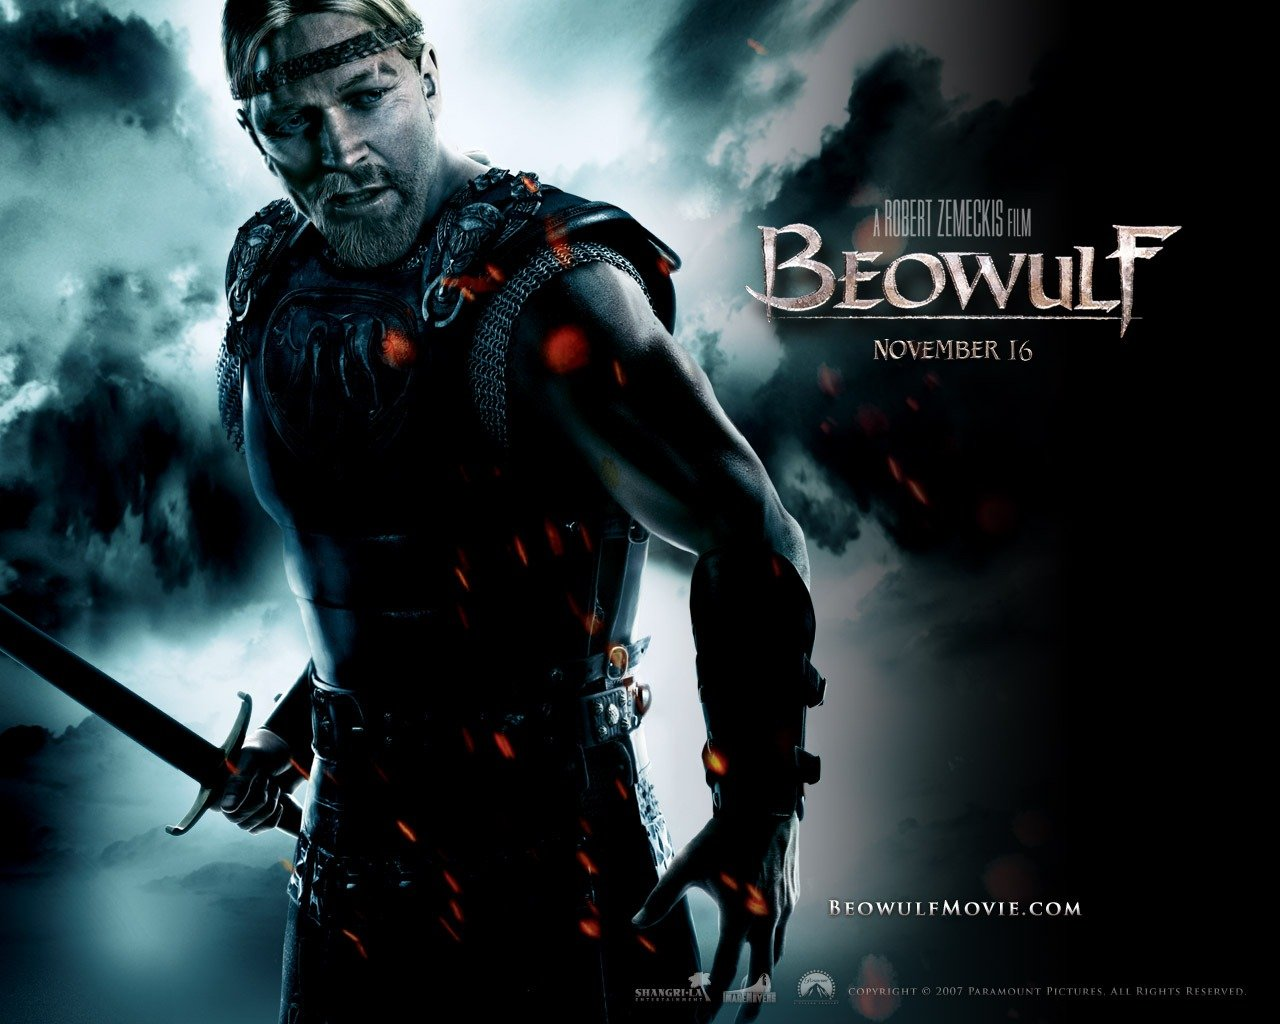 women in beowulf The social centrality of women in beowulf notes and bibliography notes 1 the women in beowulf, whether illegitimate monsters or pedigreed peaceweaving queens.